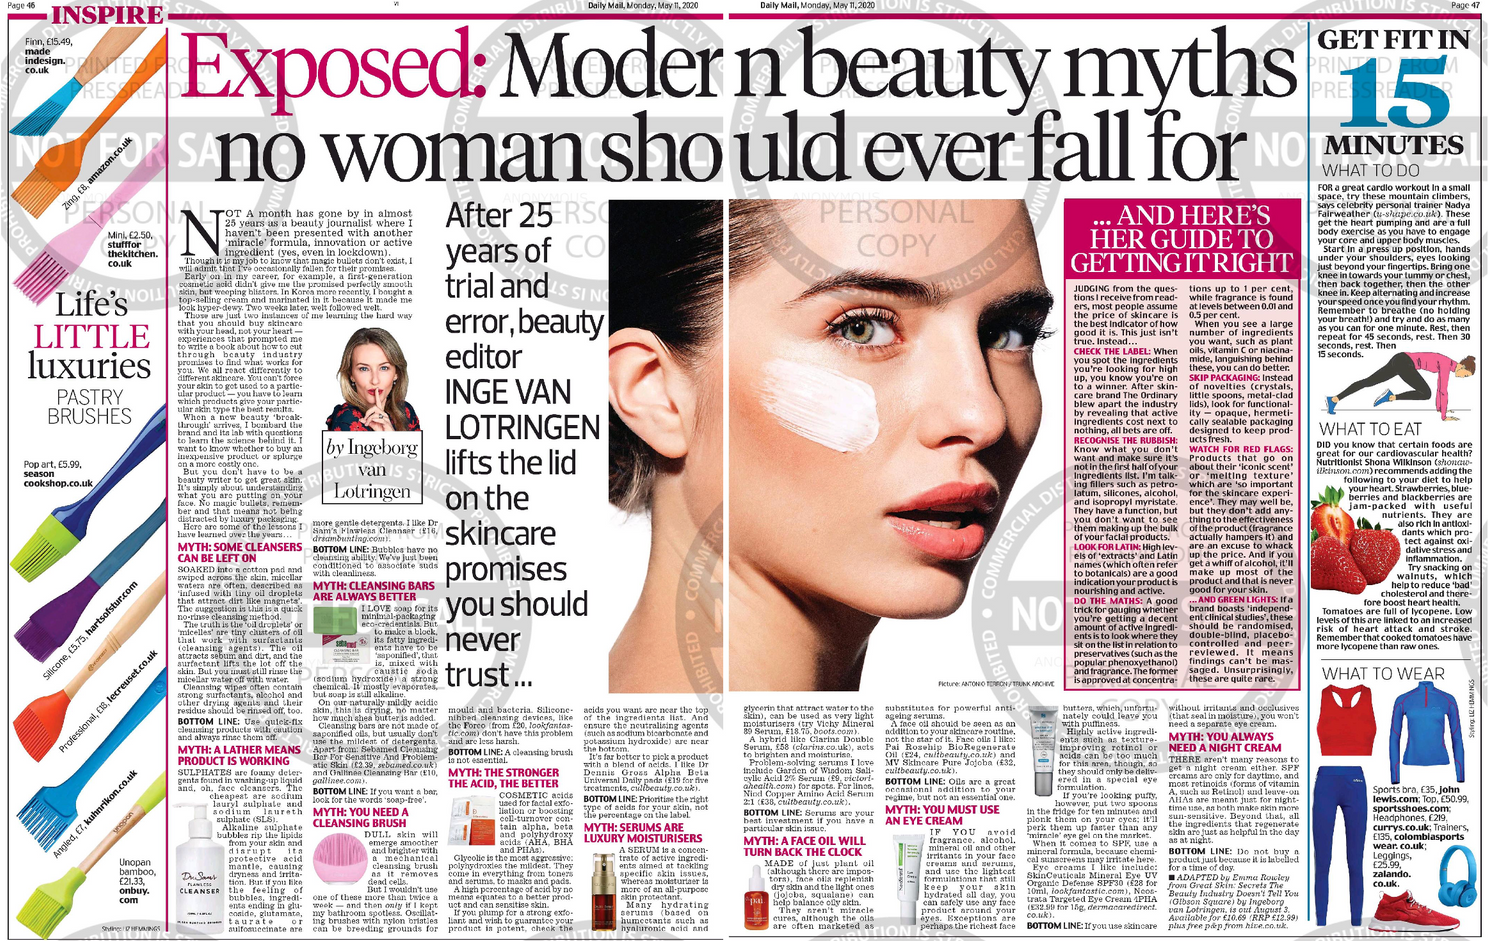 Exposed: Modern beauty myths no woman should ever fall for